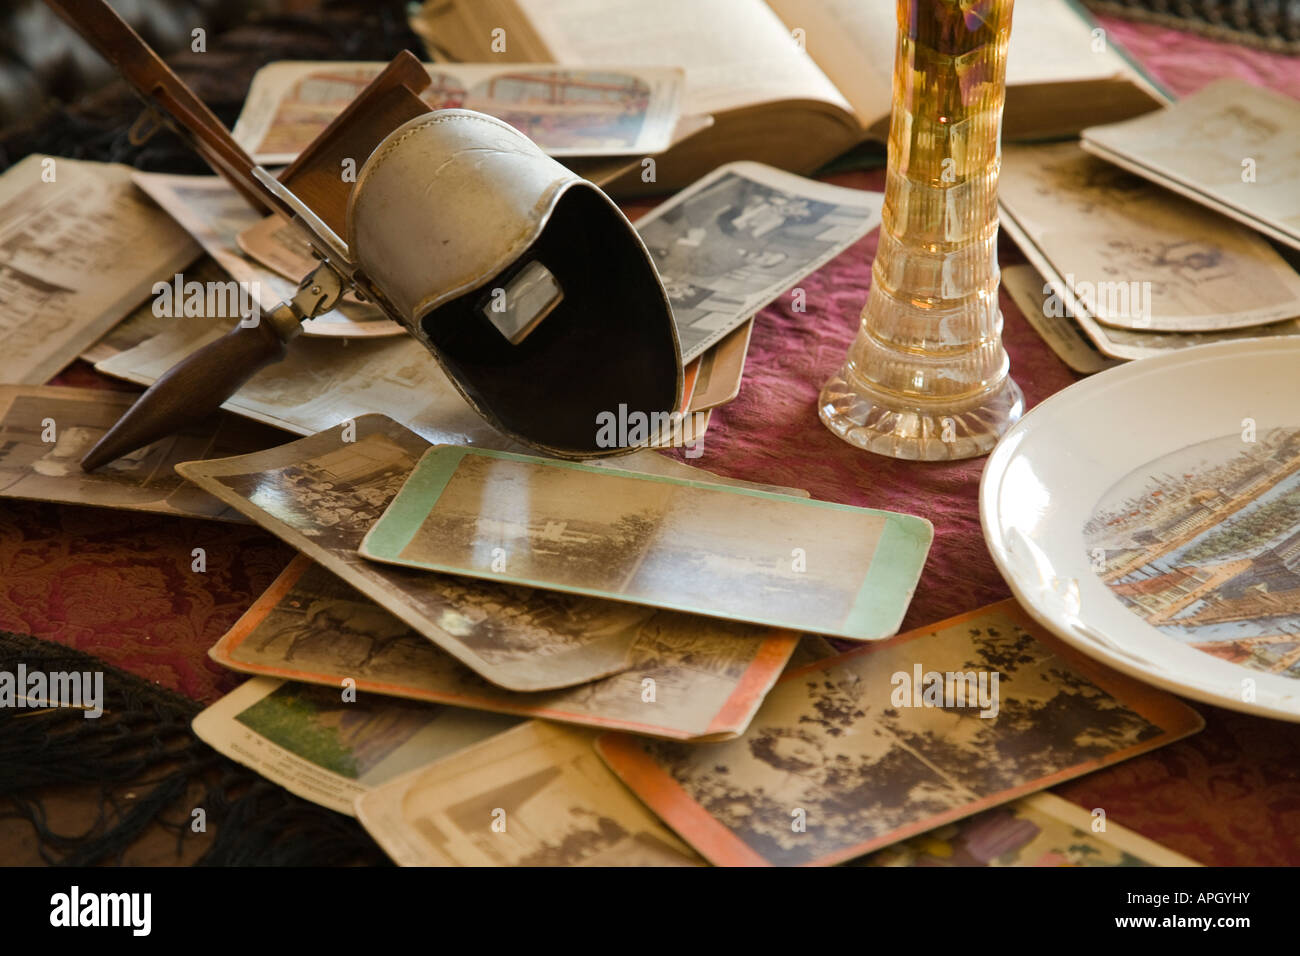 ILLINOIS Rockford Stereoscope and viewing cards on table plate from Chicago Worlds Fair Midway Village - Stock Image